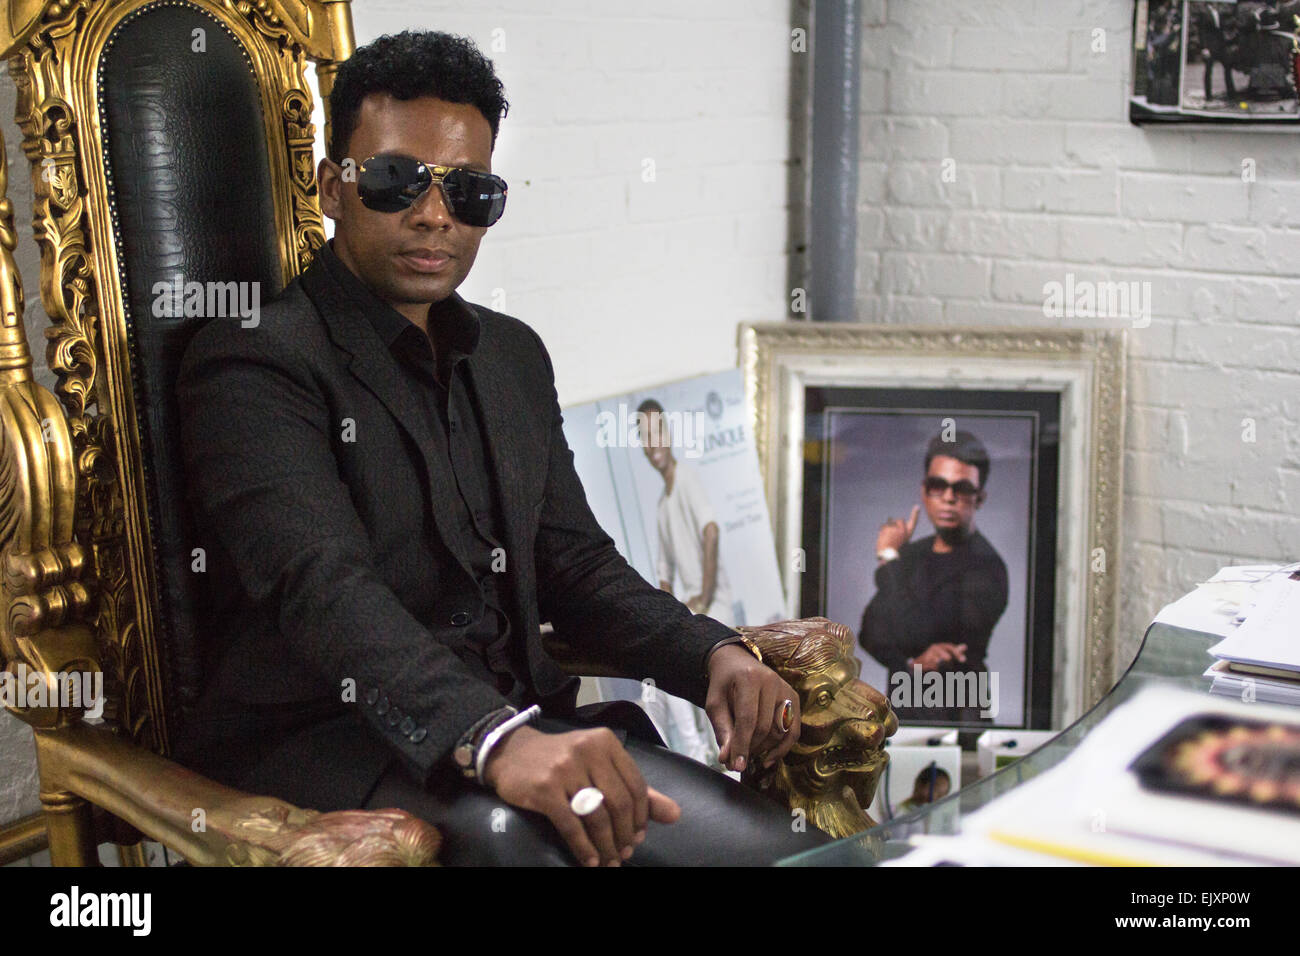 South African Fashion Designer David Tlale Poses In His Office In Stock Photo Alamy